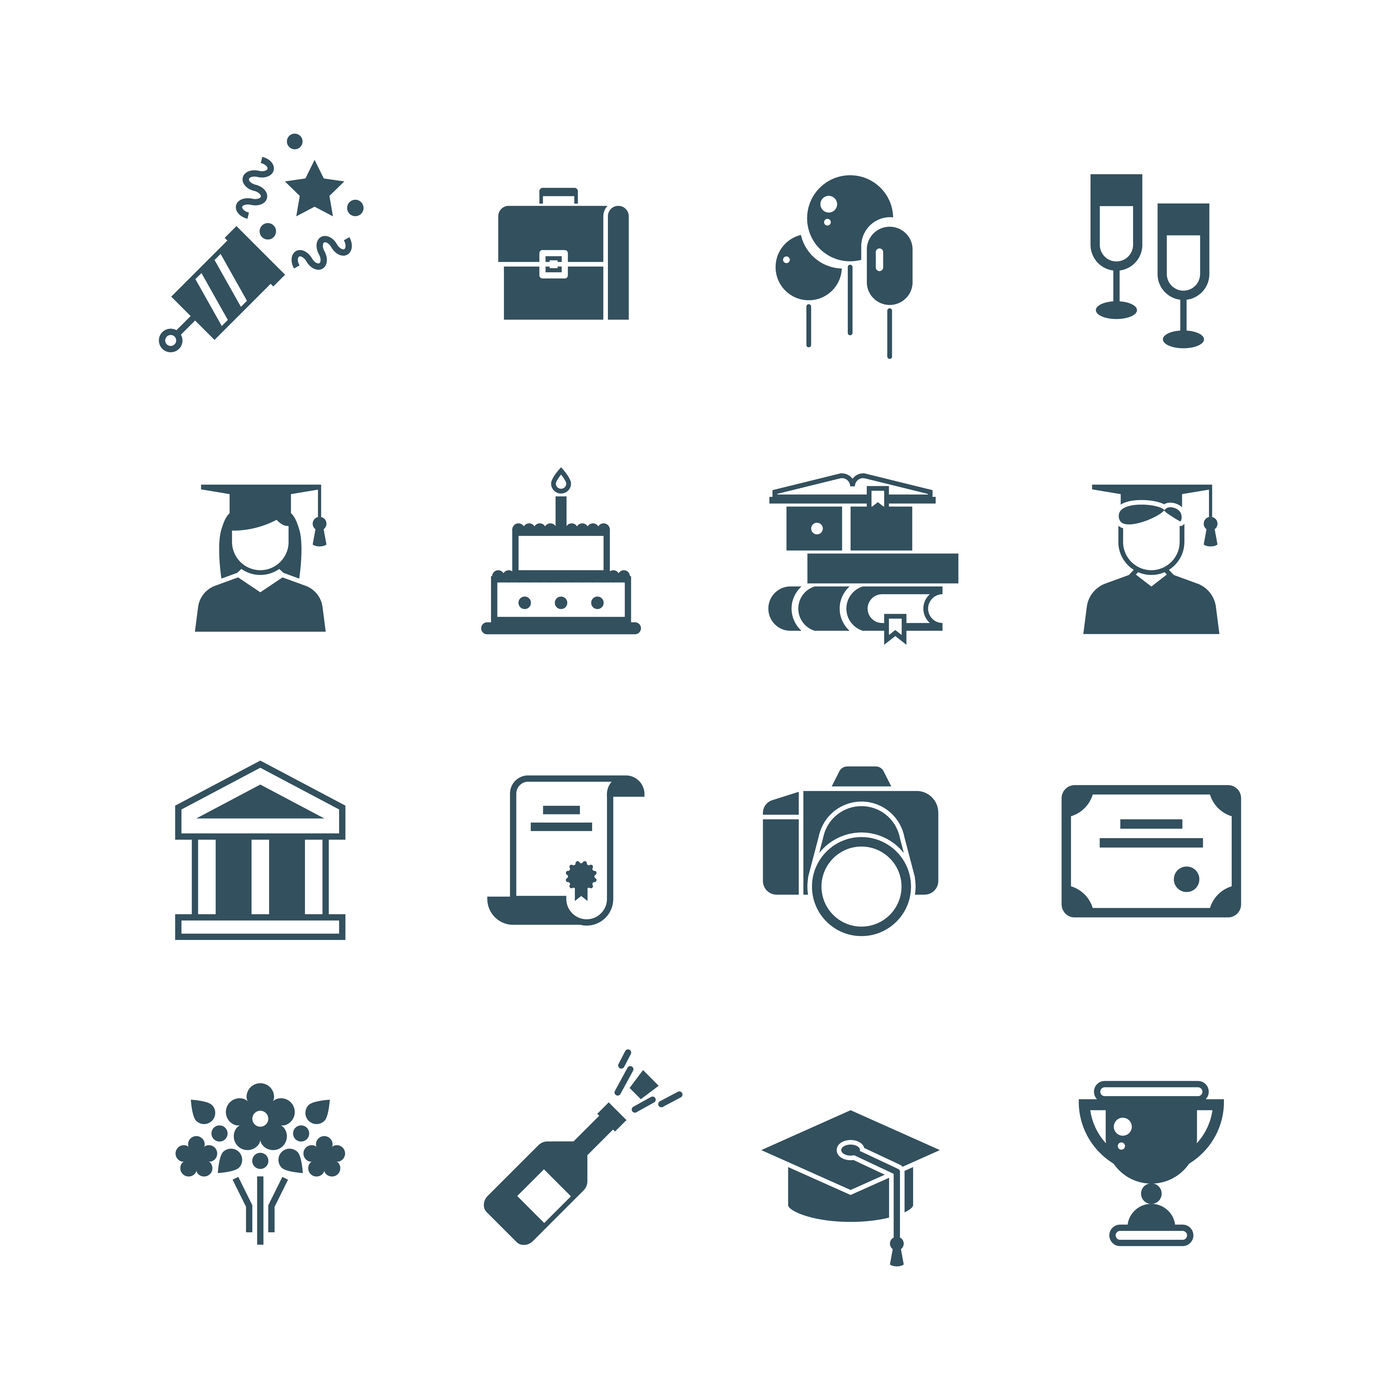 Student Achievement And High School Graduation Vector Icons By